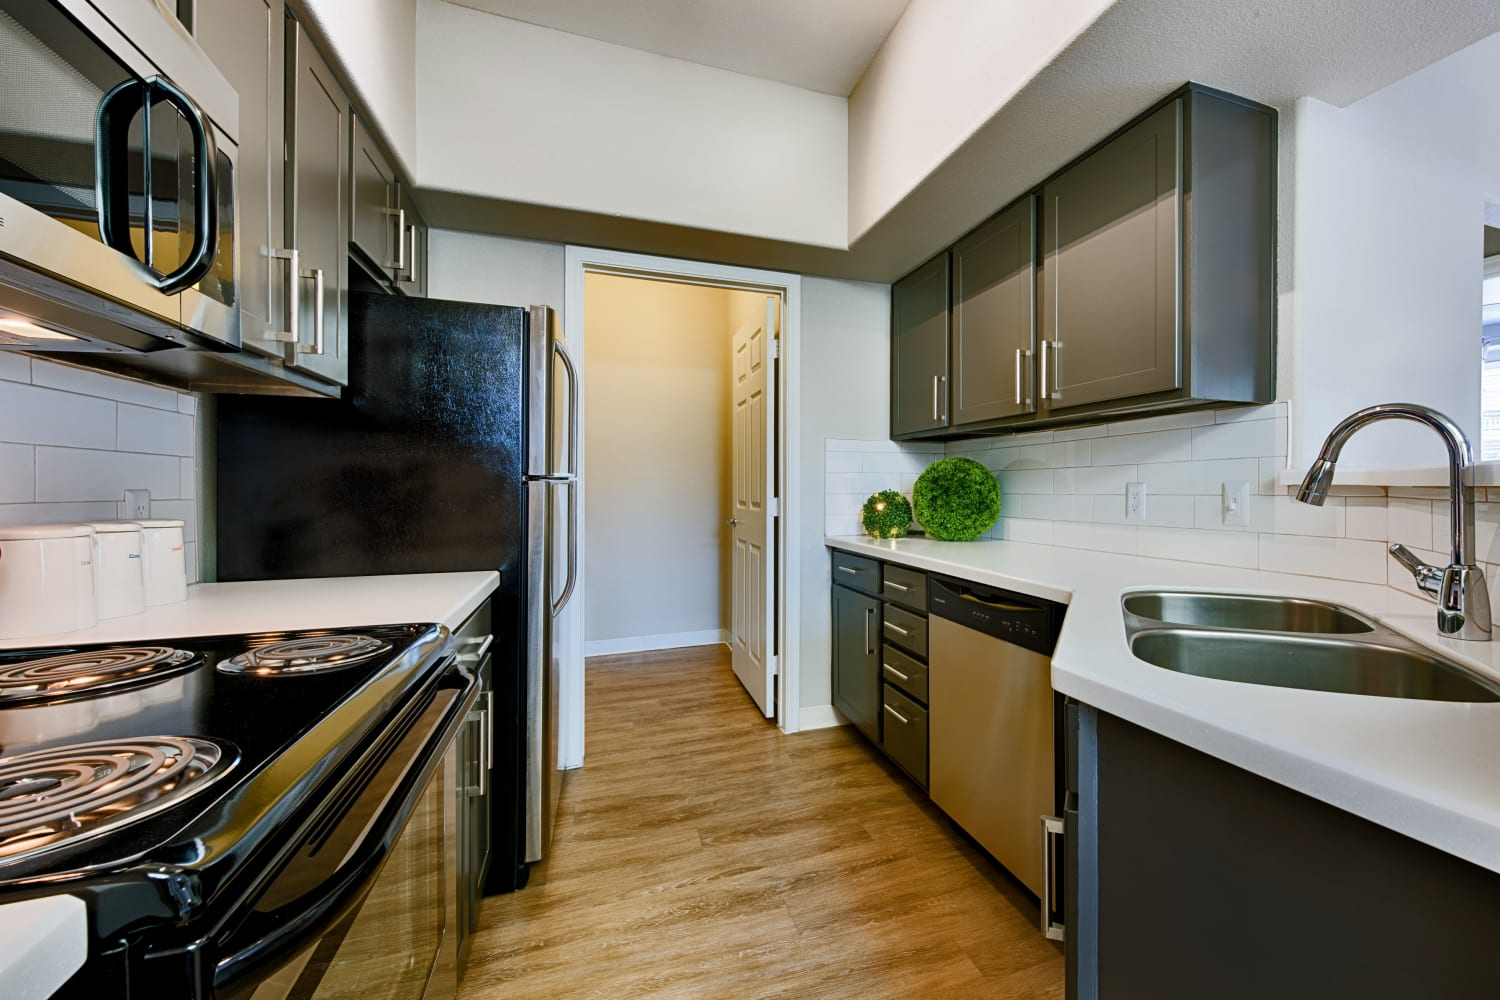 There are upgraded appliances in the kitchens at Sonoran Vista Apartments in Scottsdale, Arizona